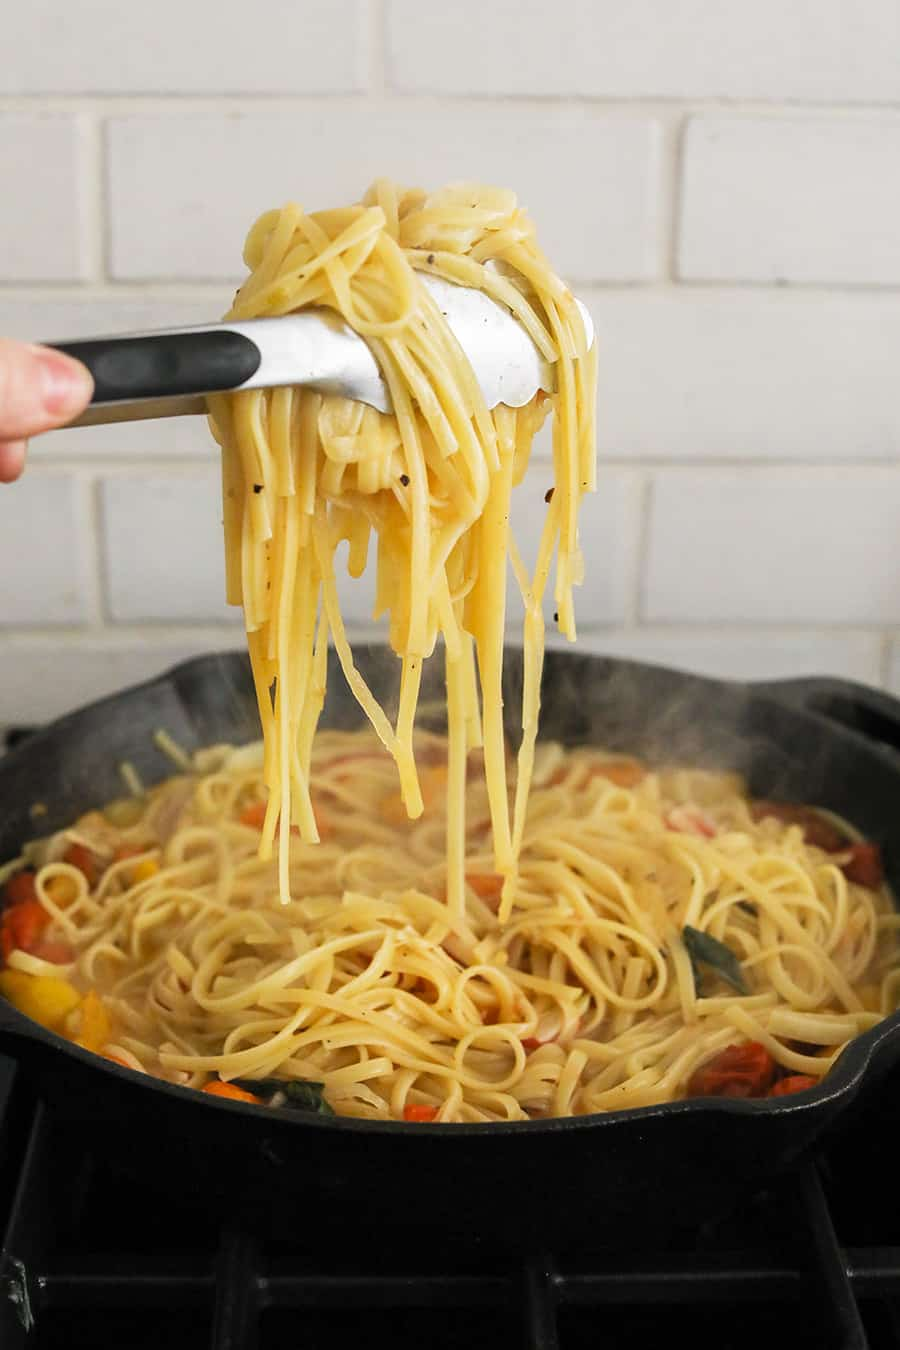 Holding noodles above a cast iron skillet